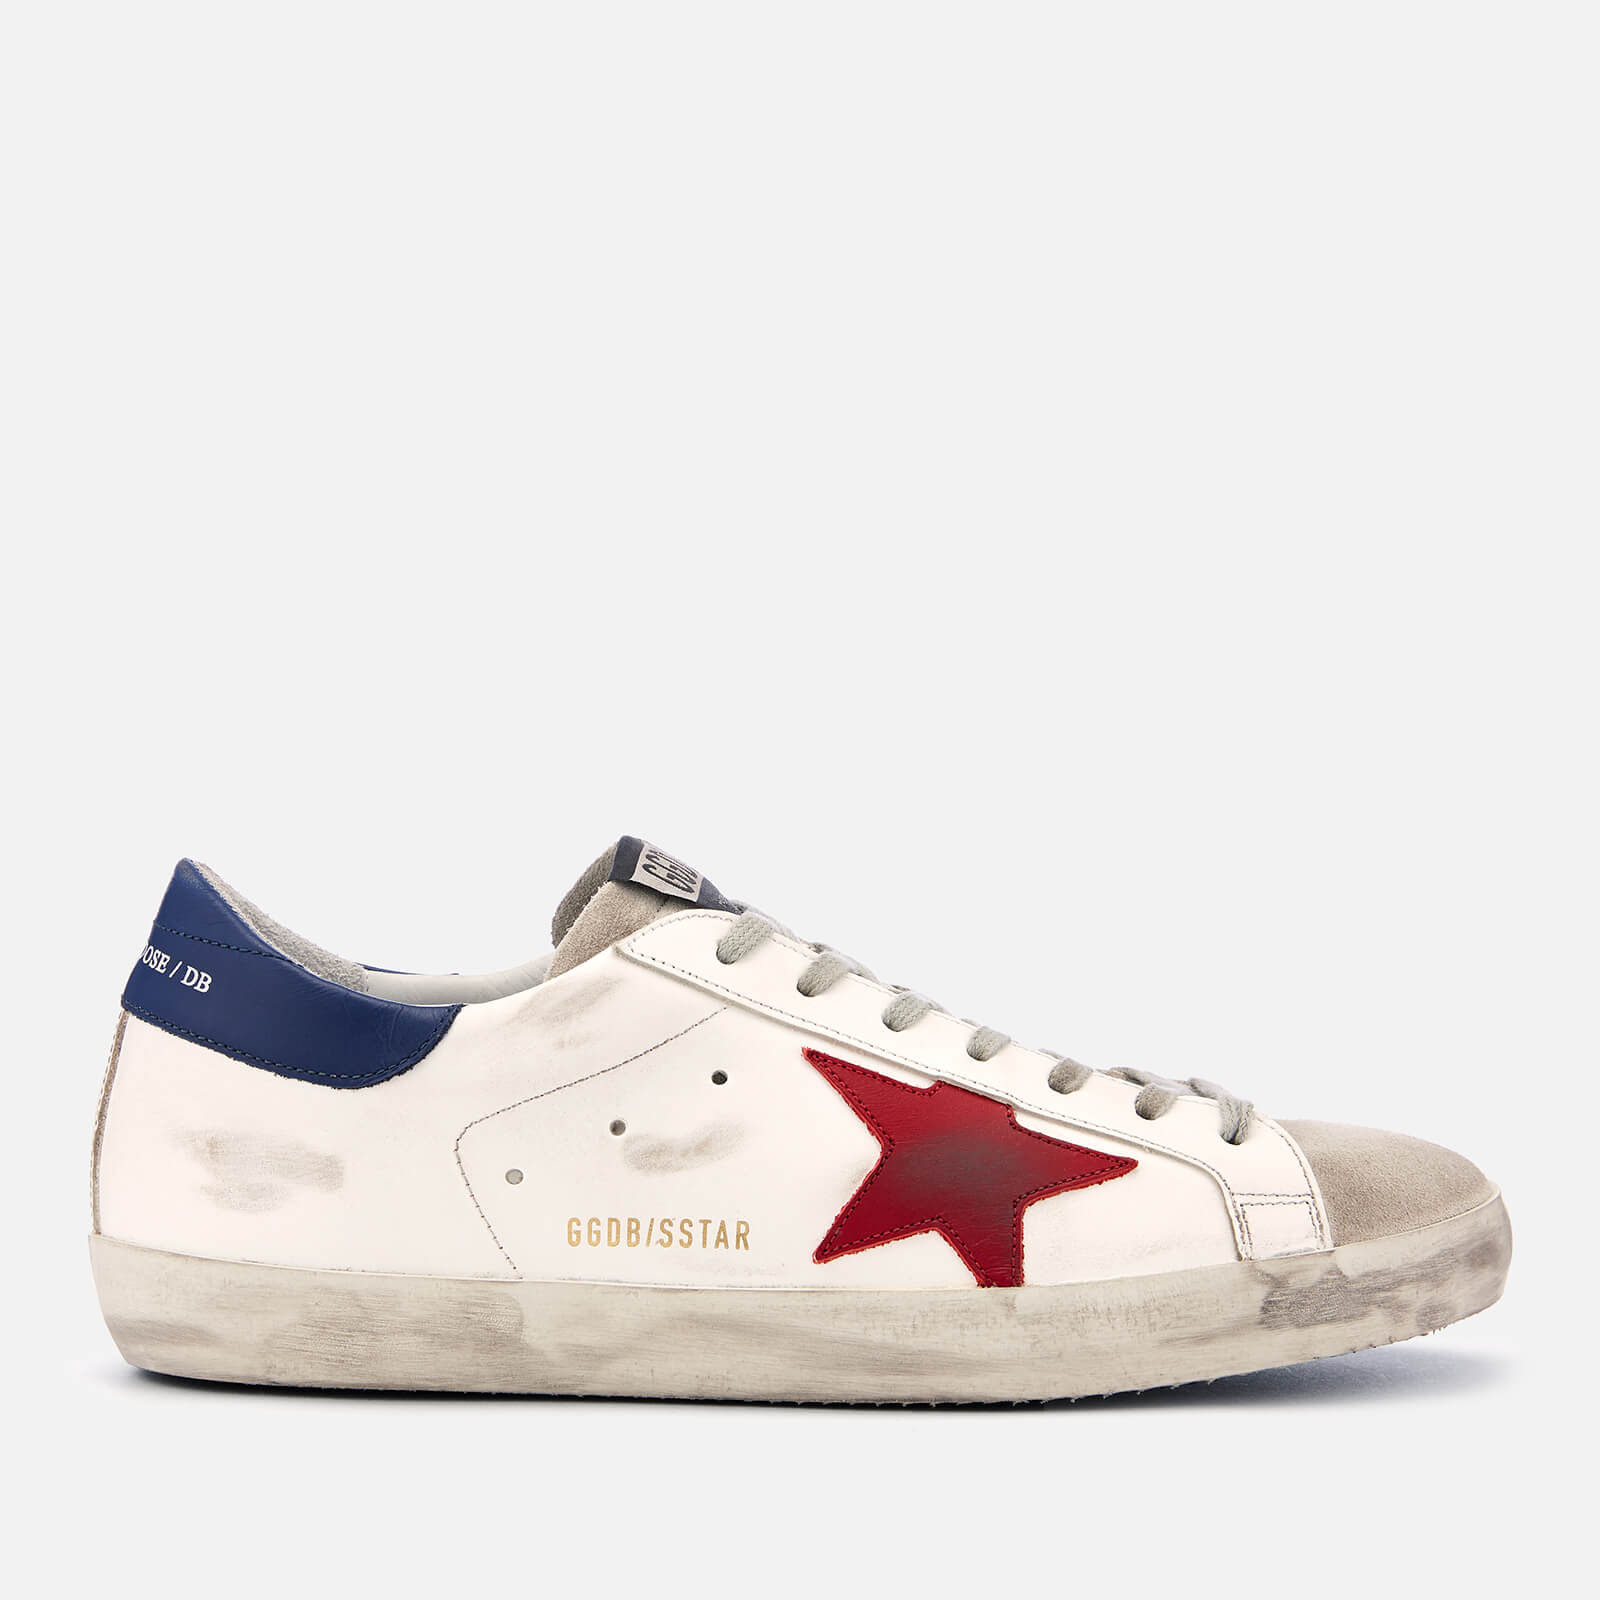 7c86a2172f5 Golden Goose Deluxe Brand Men s Superstar Leather Trainers - White Red Star  - Free UK Delivery over £50